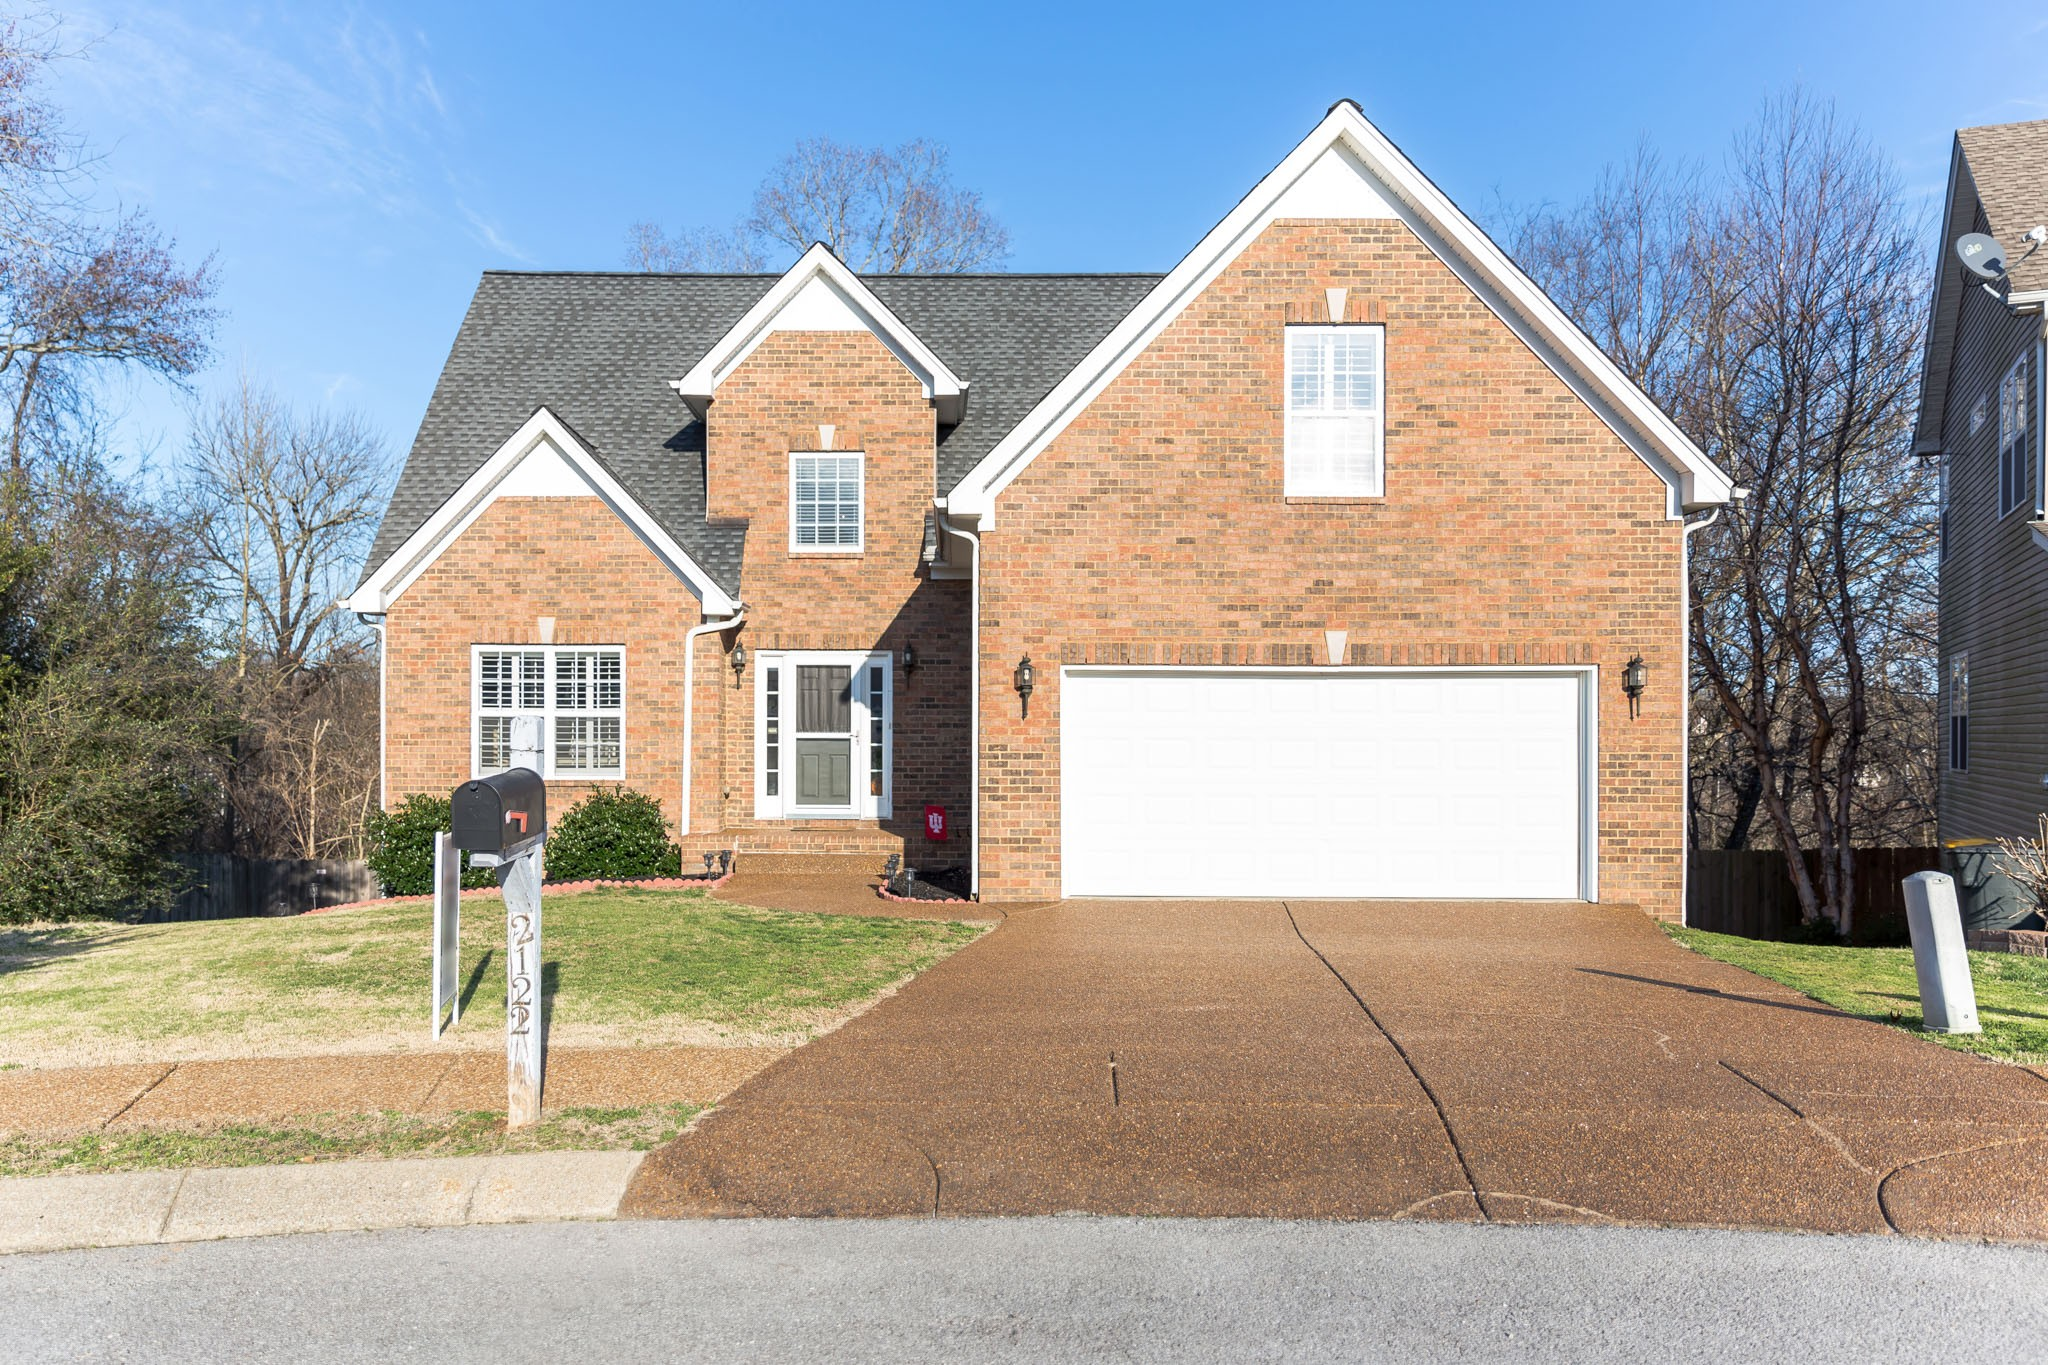 2122 Ieper Dr, Spring Hill, TN 37174 - Spring Hill, TN real estate listing